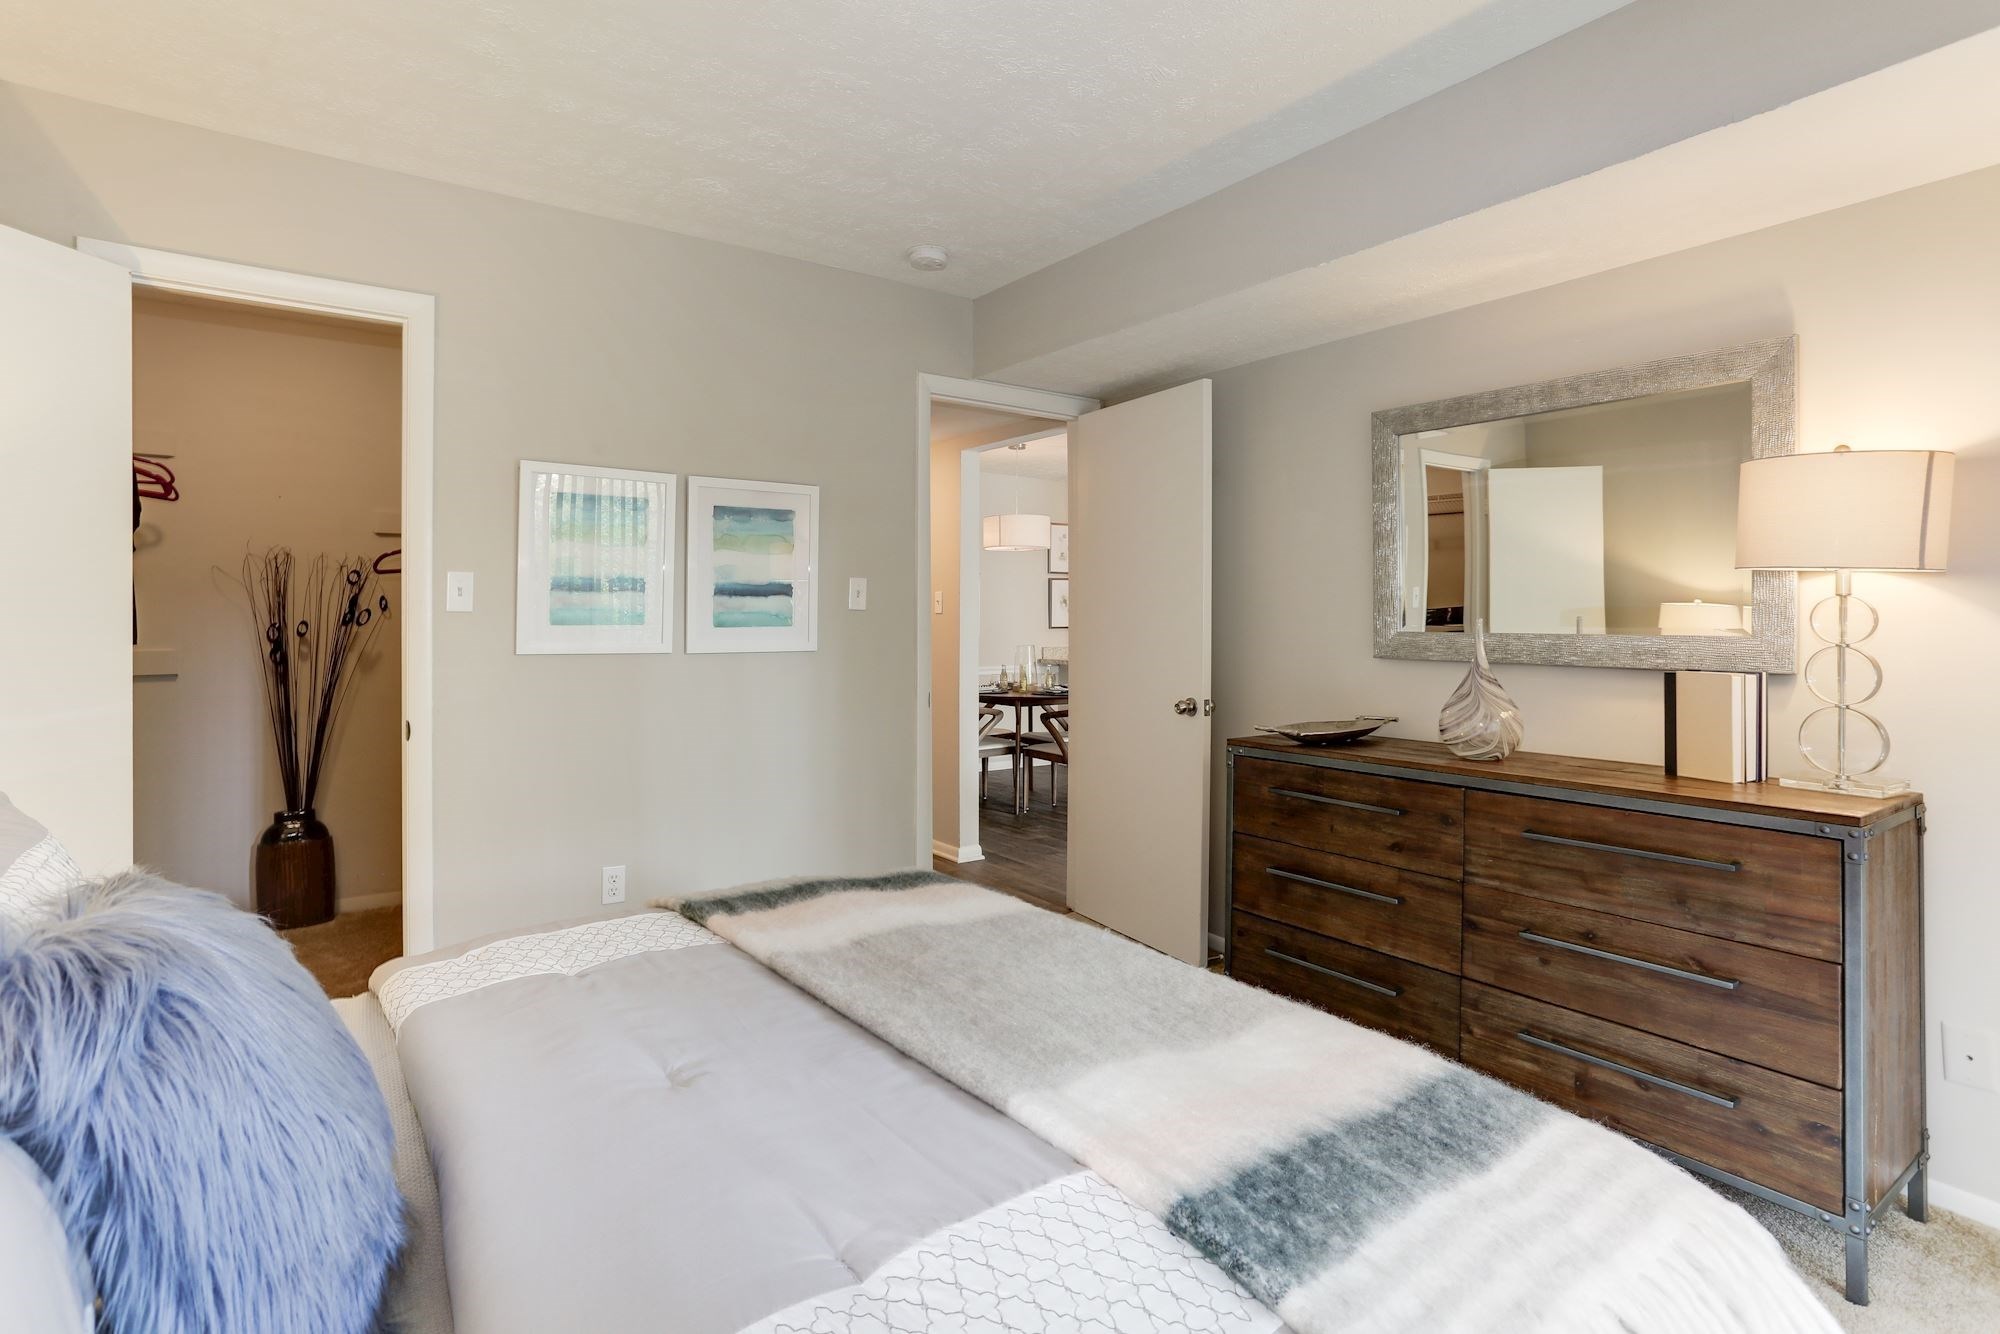 Columbia Apartments in Maryland for Rent - Hamilton at Kings Place Bedroom